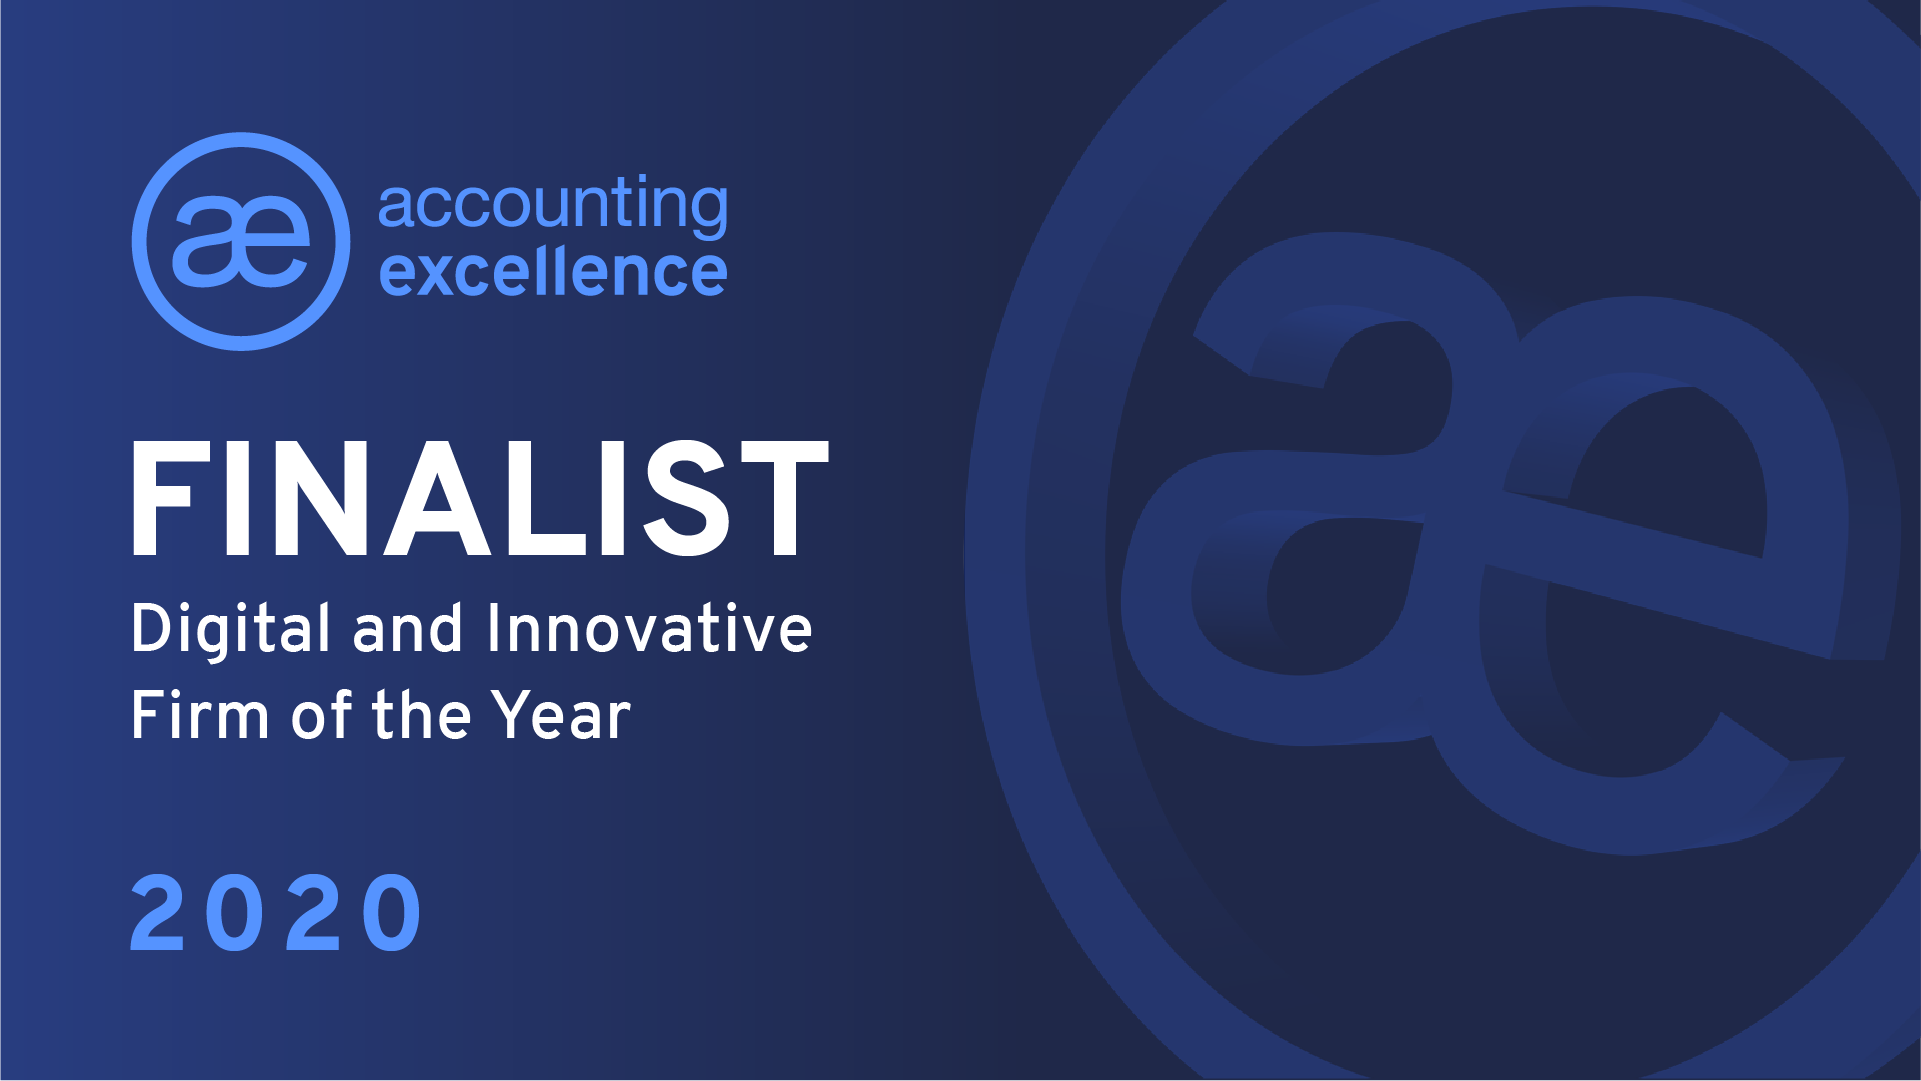 We Run Your Practice Shortlisted for Accounting Excellence Award!